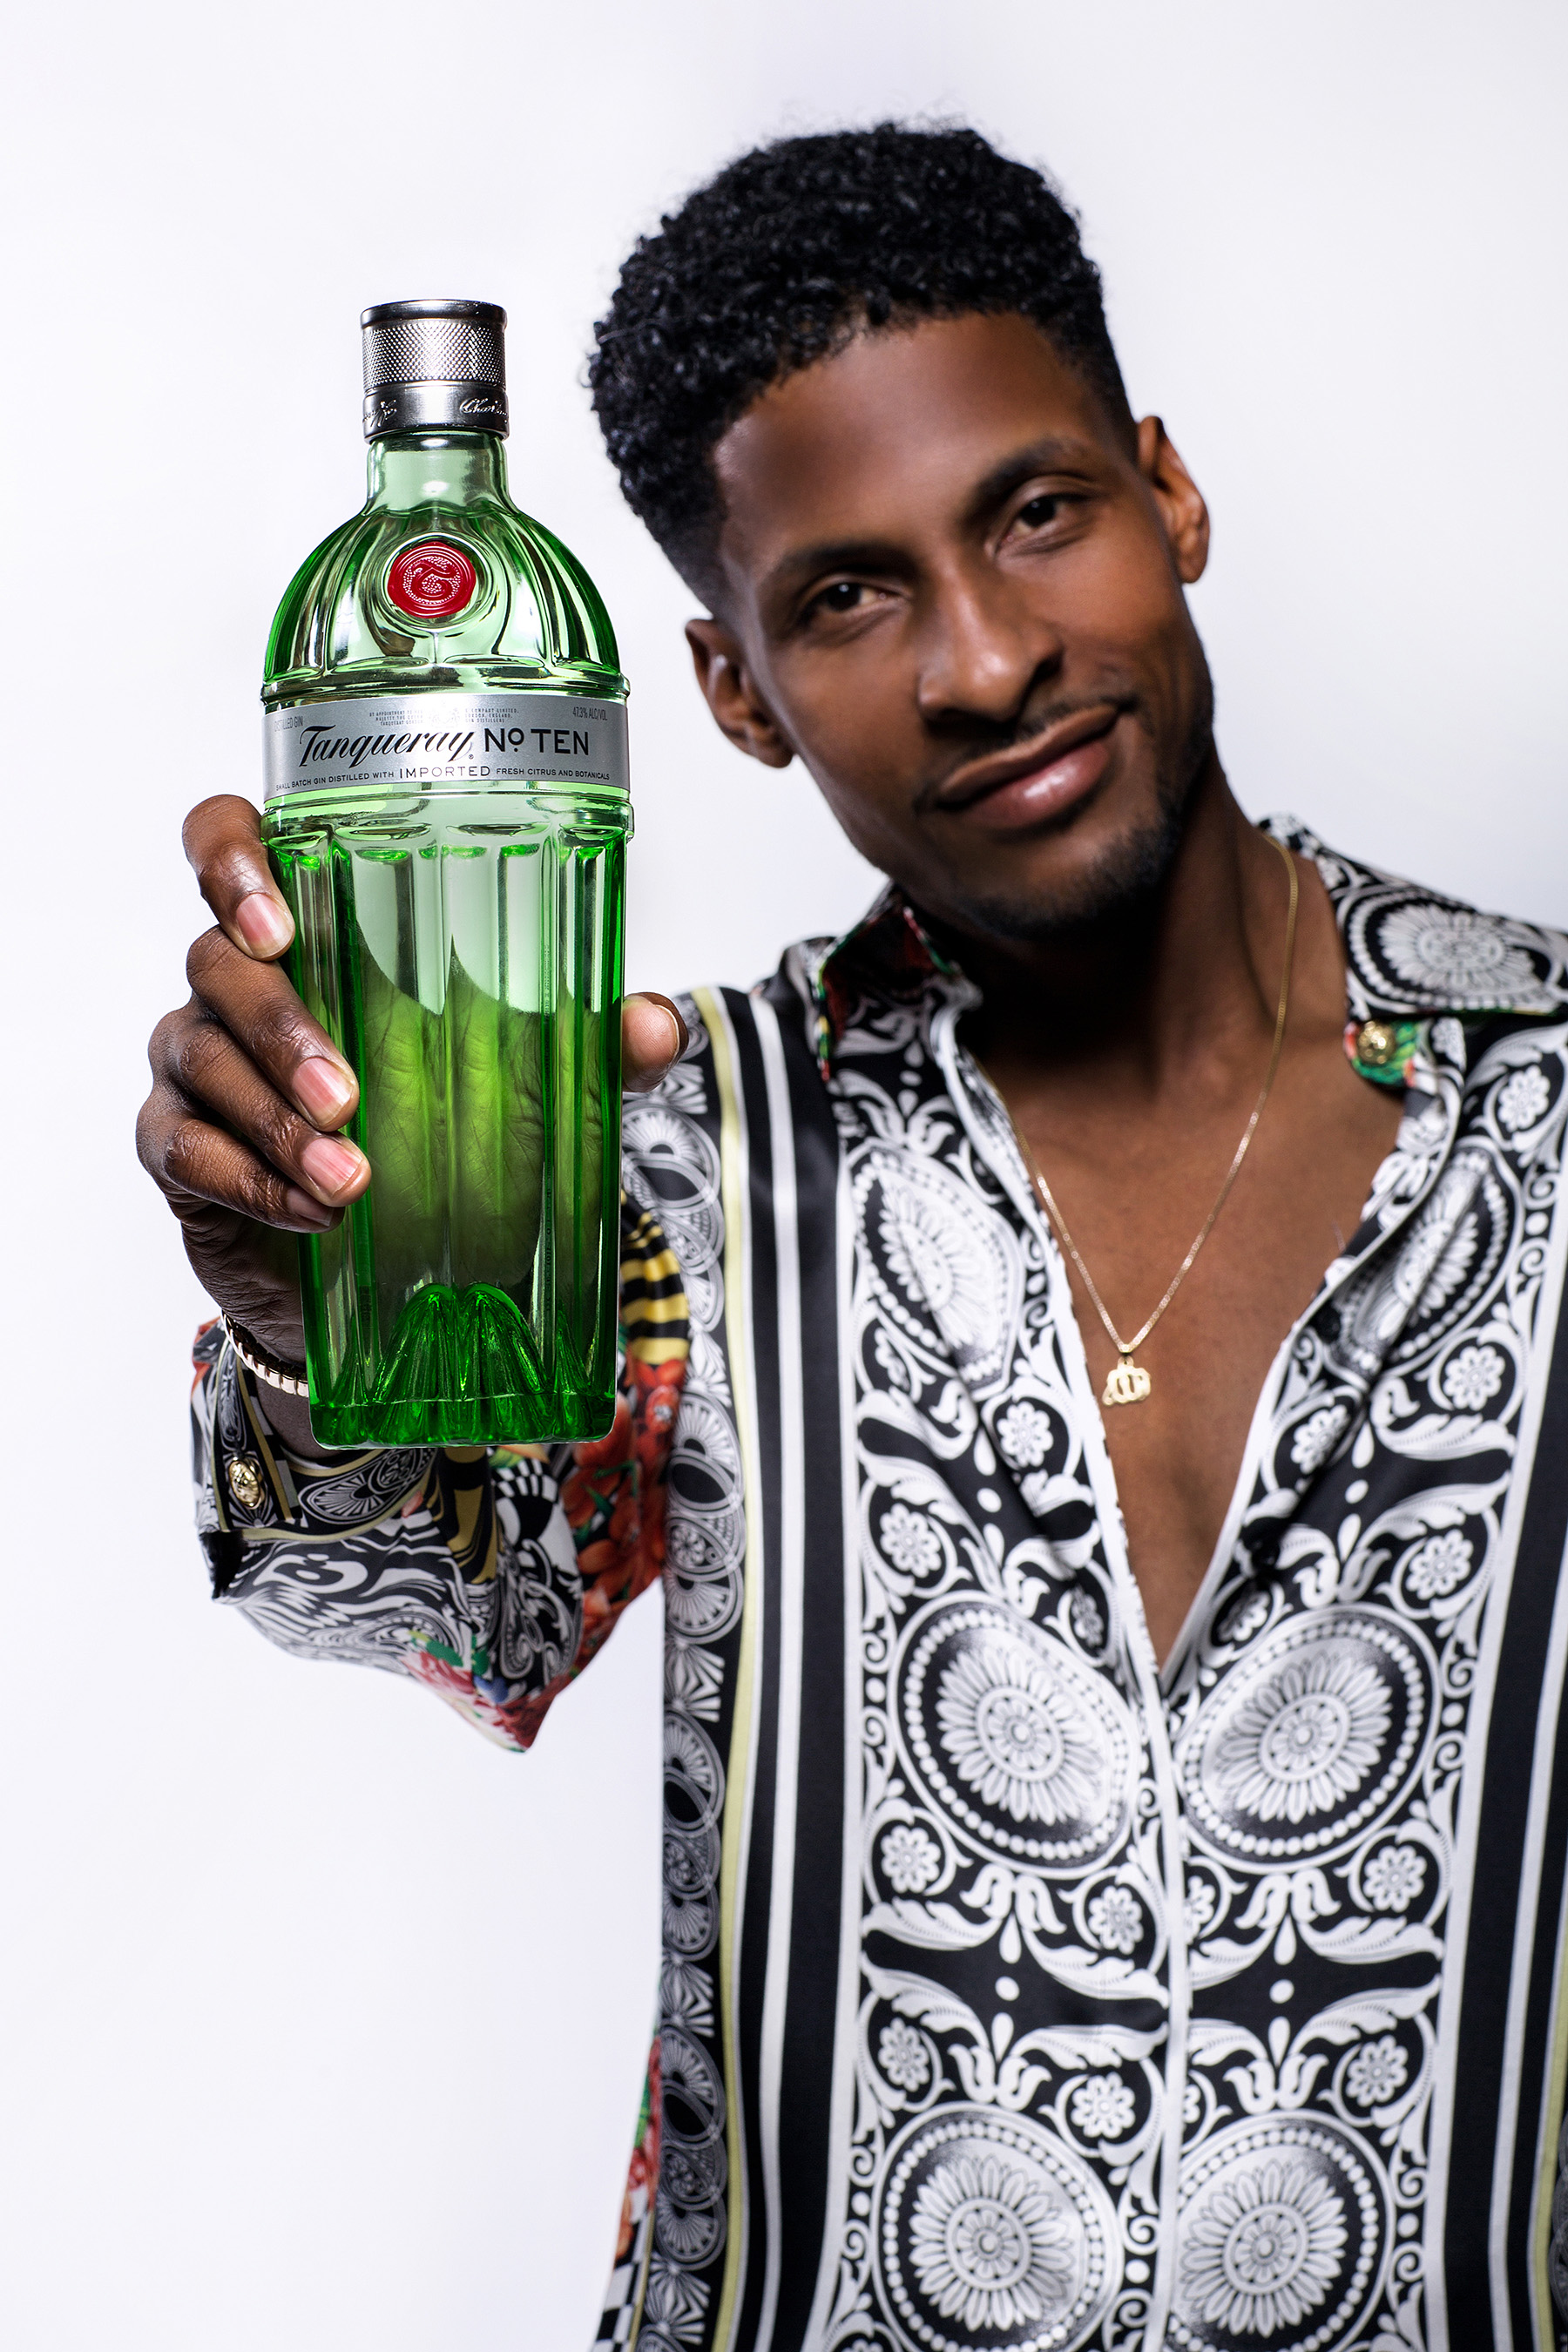 Artist and rapper STIX joins new 'The Tanqueray TEN' group inspiring the next generation